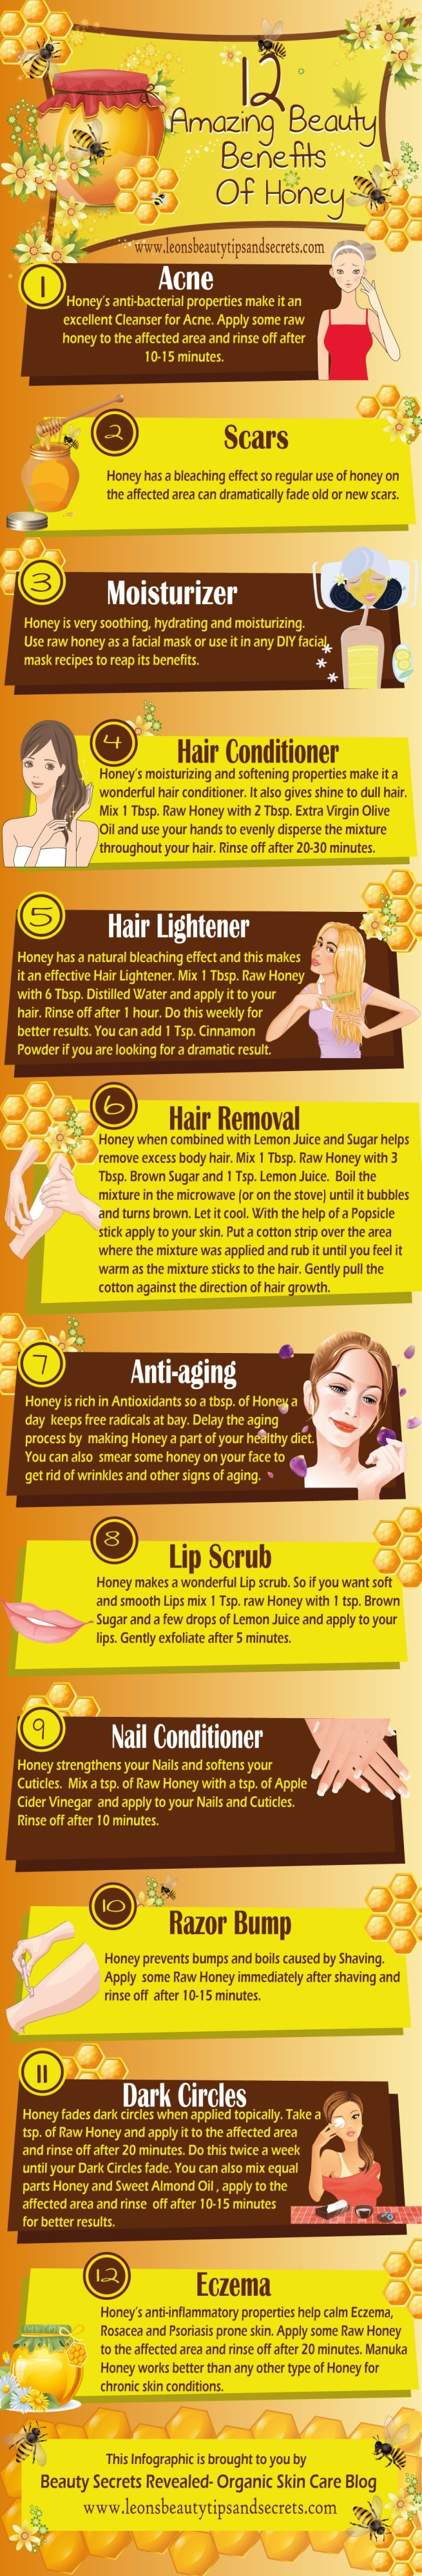 Benefits of Honey on Skin